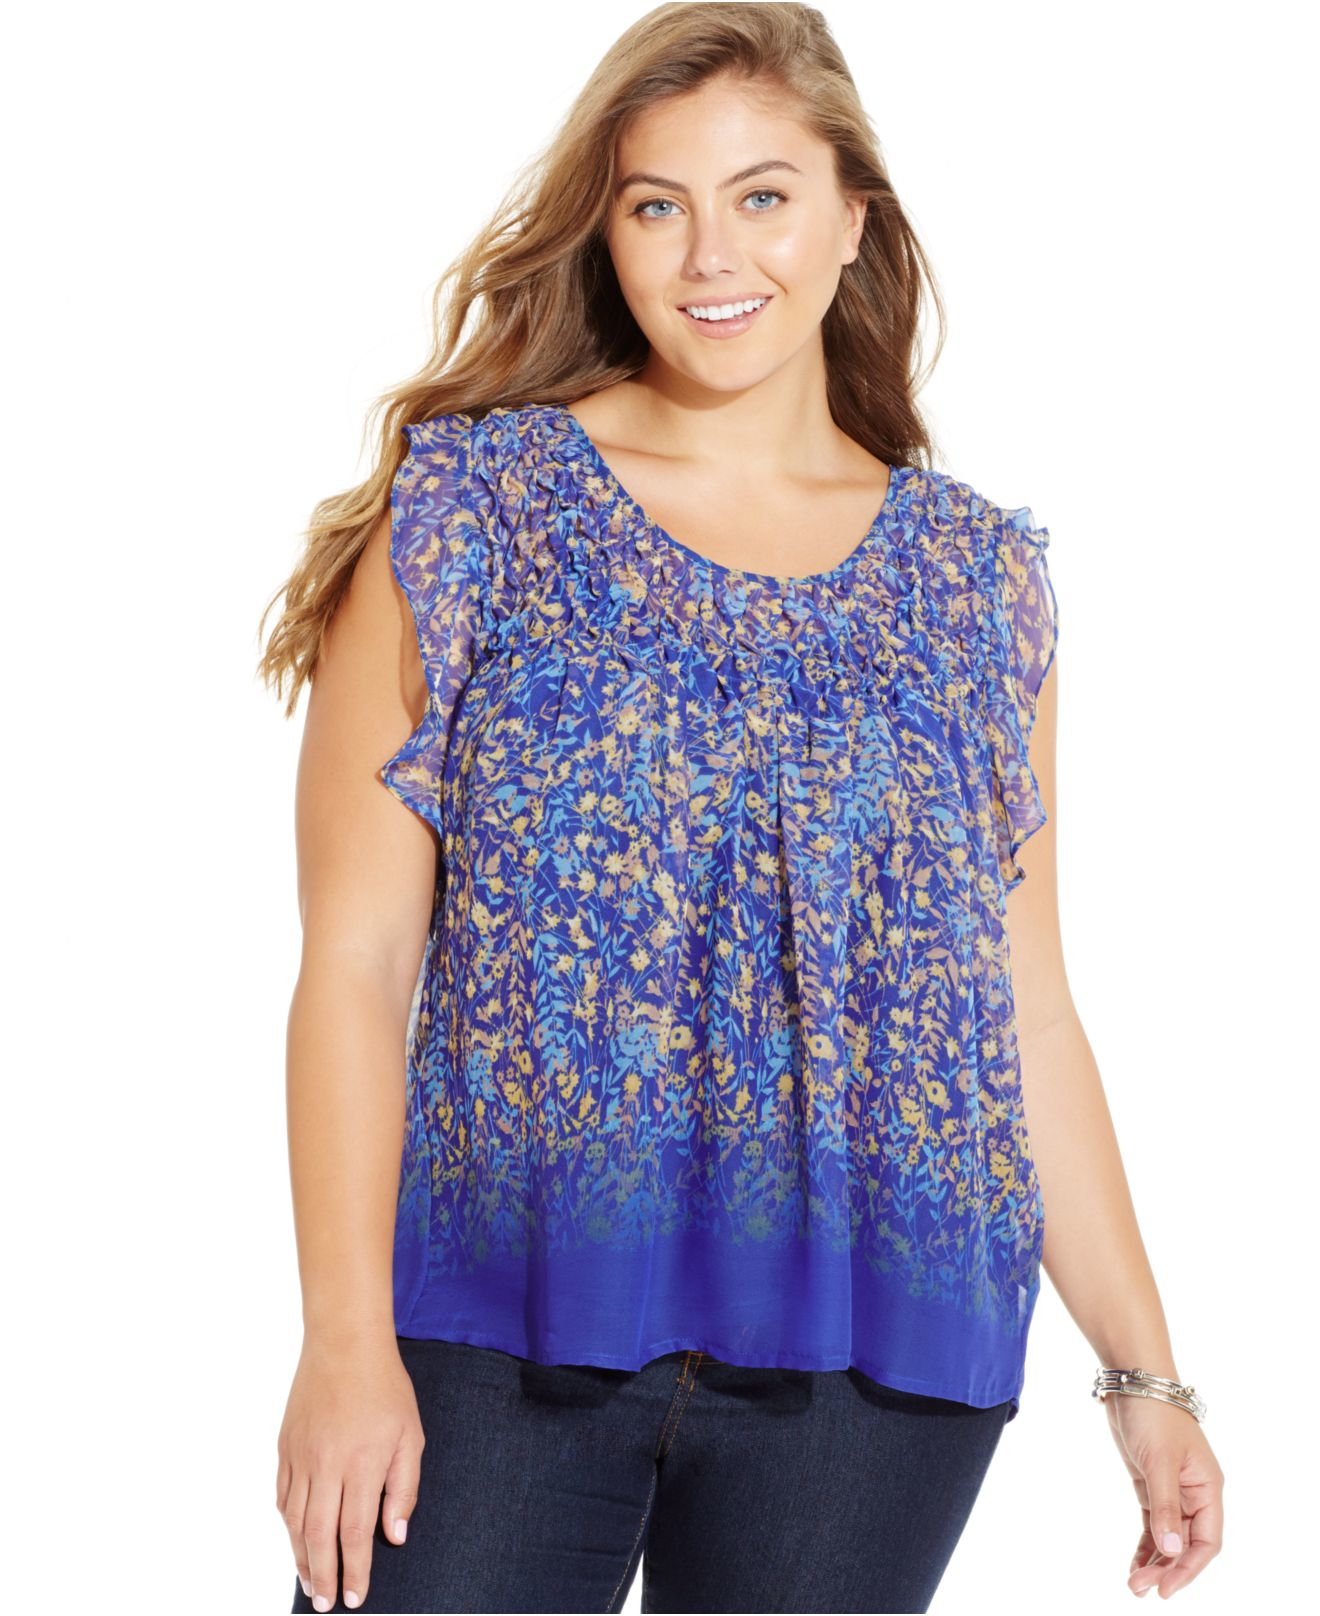 Find a Women's Blue Blouse, Juniors Blue Blouse, and more at Macy's. Macy's Presents: The Edit - A curated mix of fashion and inspiration Check It Out Free Shipping with $49 purchase + Free Store Pickup.